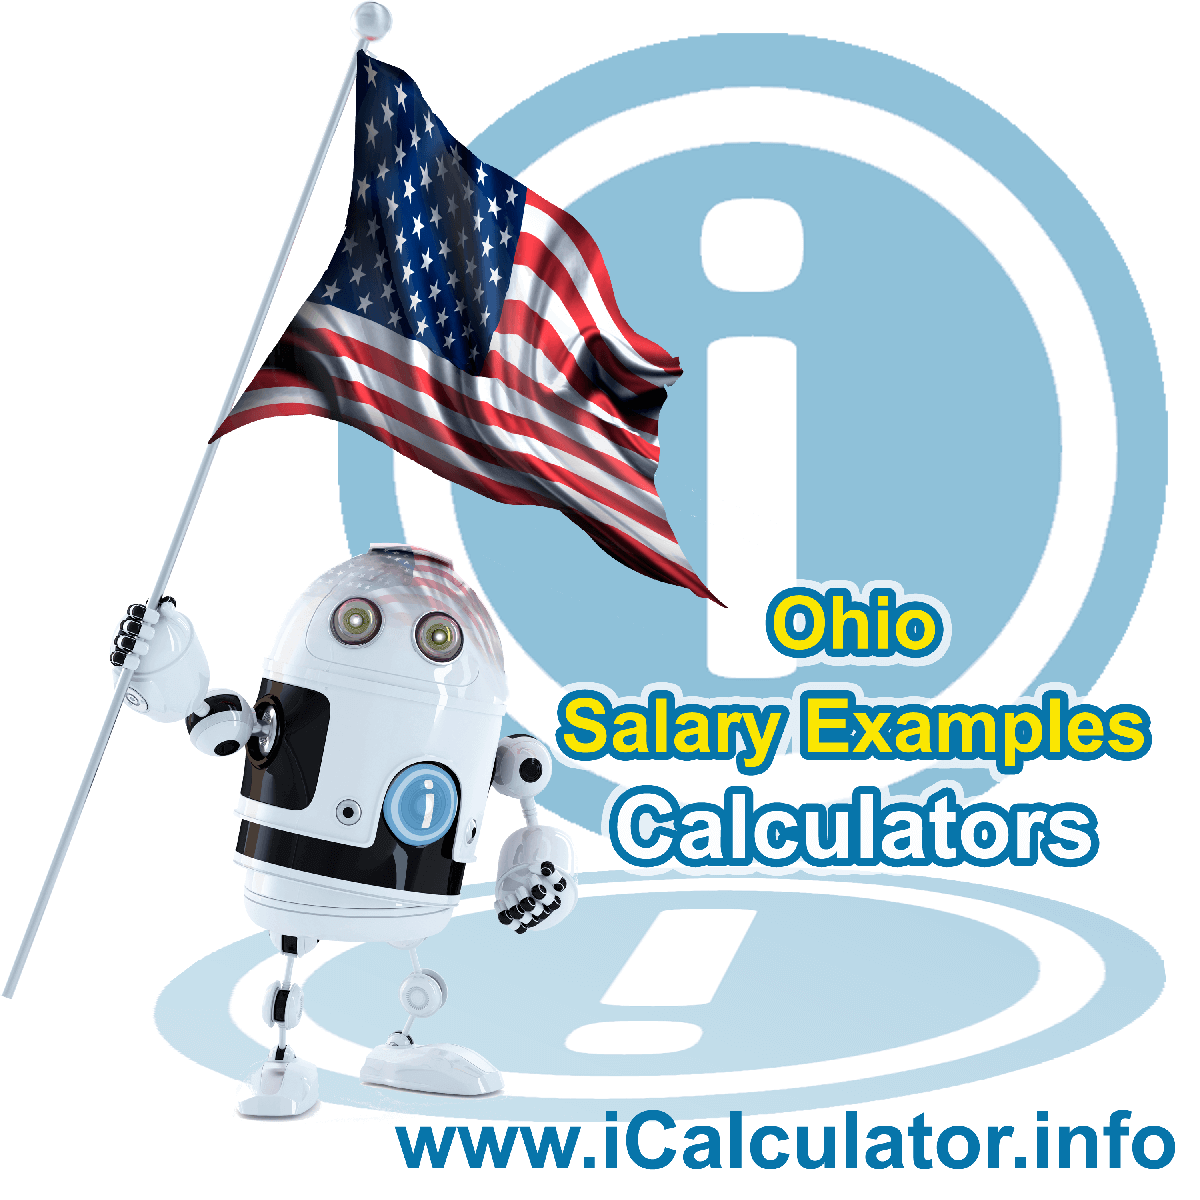 Ohio Salary Example for $160.00 in 2020 | iCalculator | $160.00 salary example for employee and employer paying Ohio State tincome taxes. Detailed salary after tax calculation including Ohio State Tax, Federal State Tax, Medicare Deductions, Social Security, Capital Gains and other income tax and salary deductions complete with supporting Ohio state tax tables